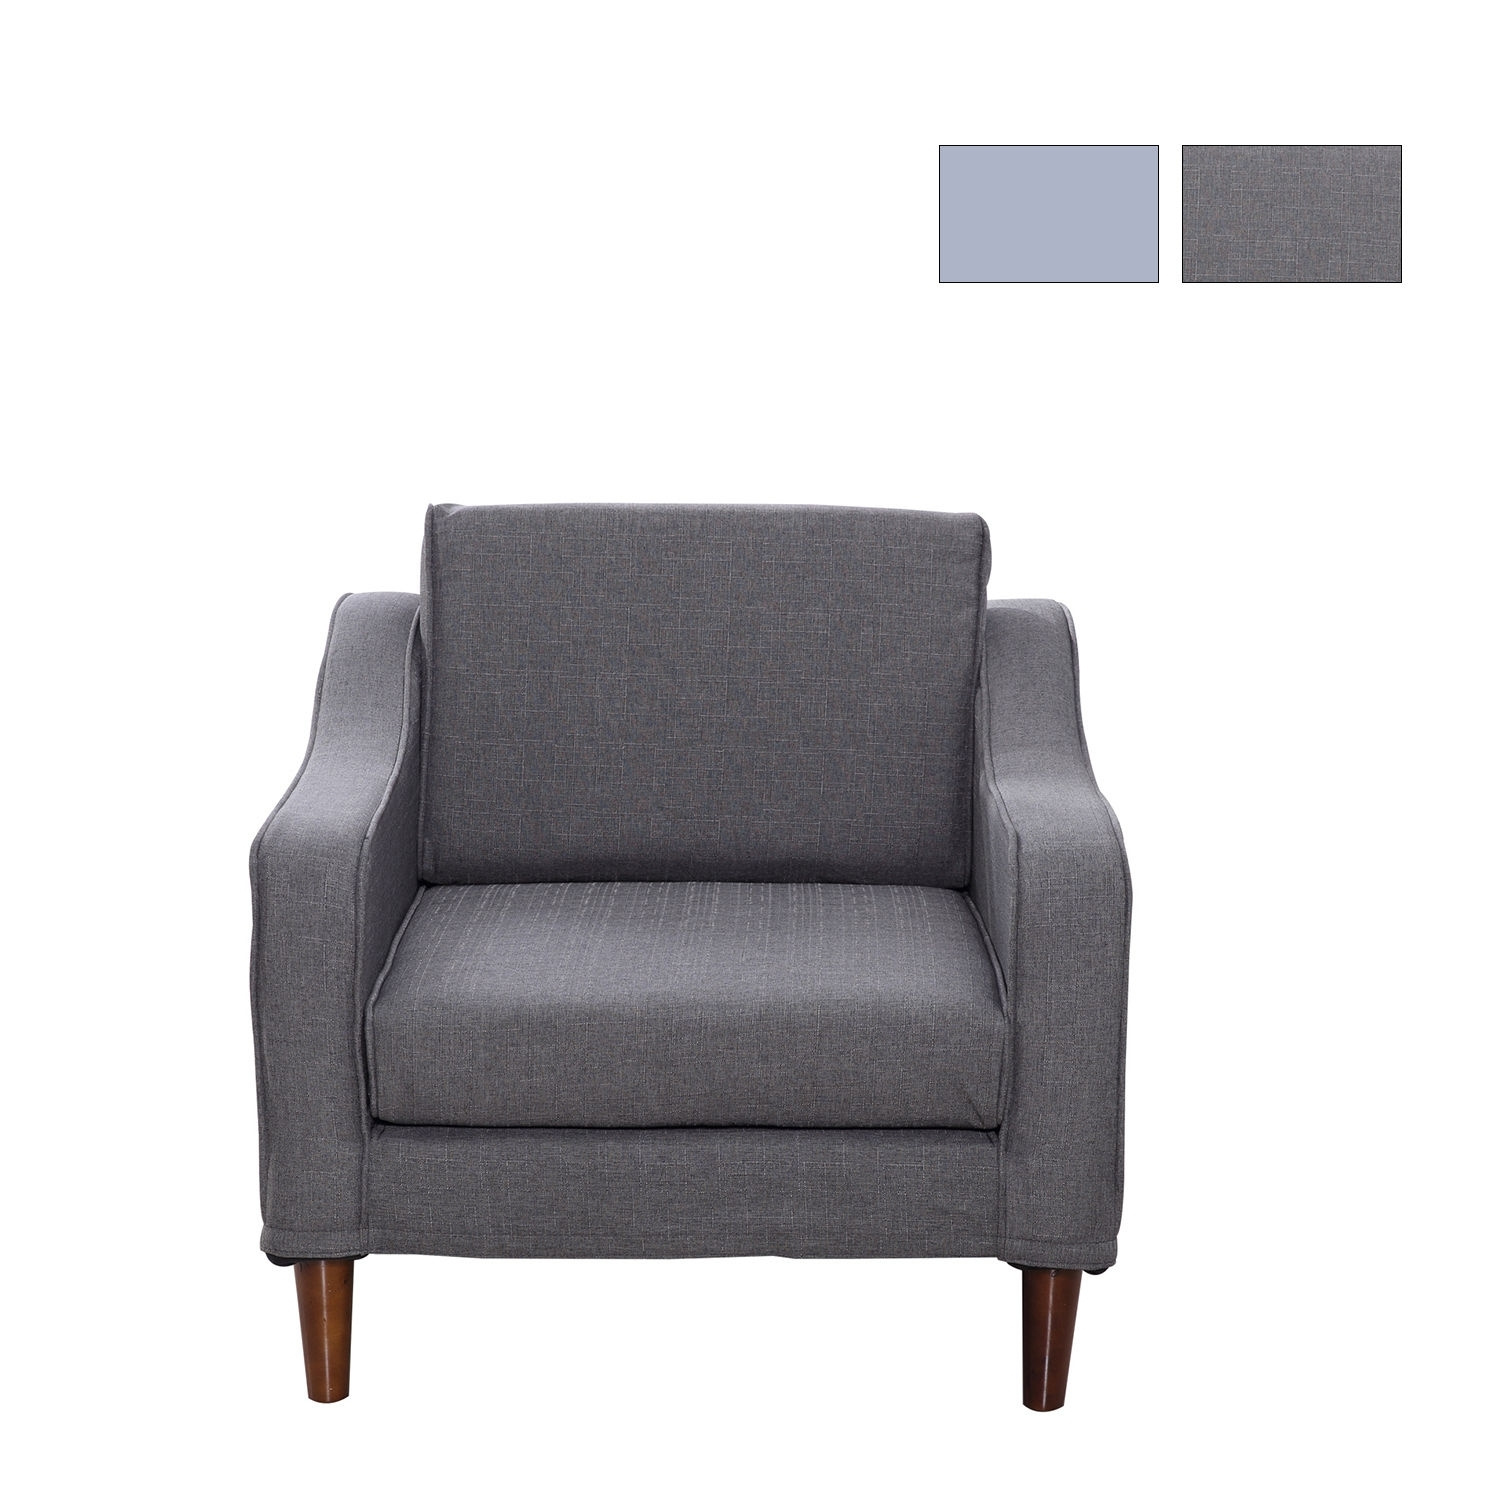 Sofa Arm Chair Single Seat Wood Chaise Linen Couch Cover Lounge Inside Sofas Photo